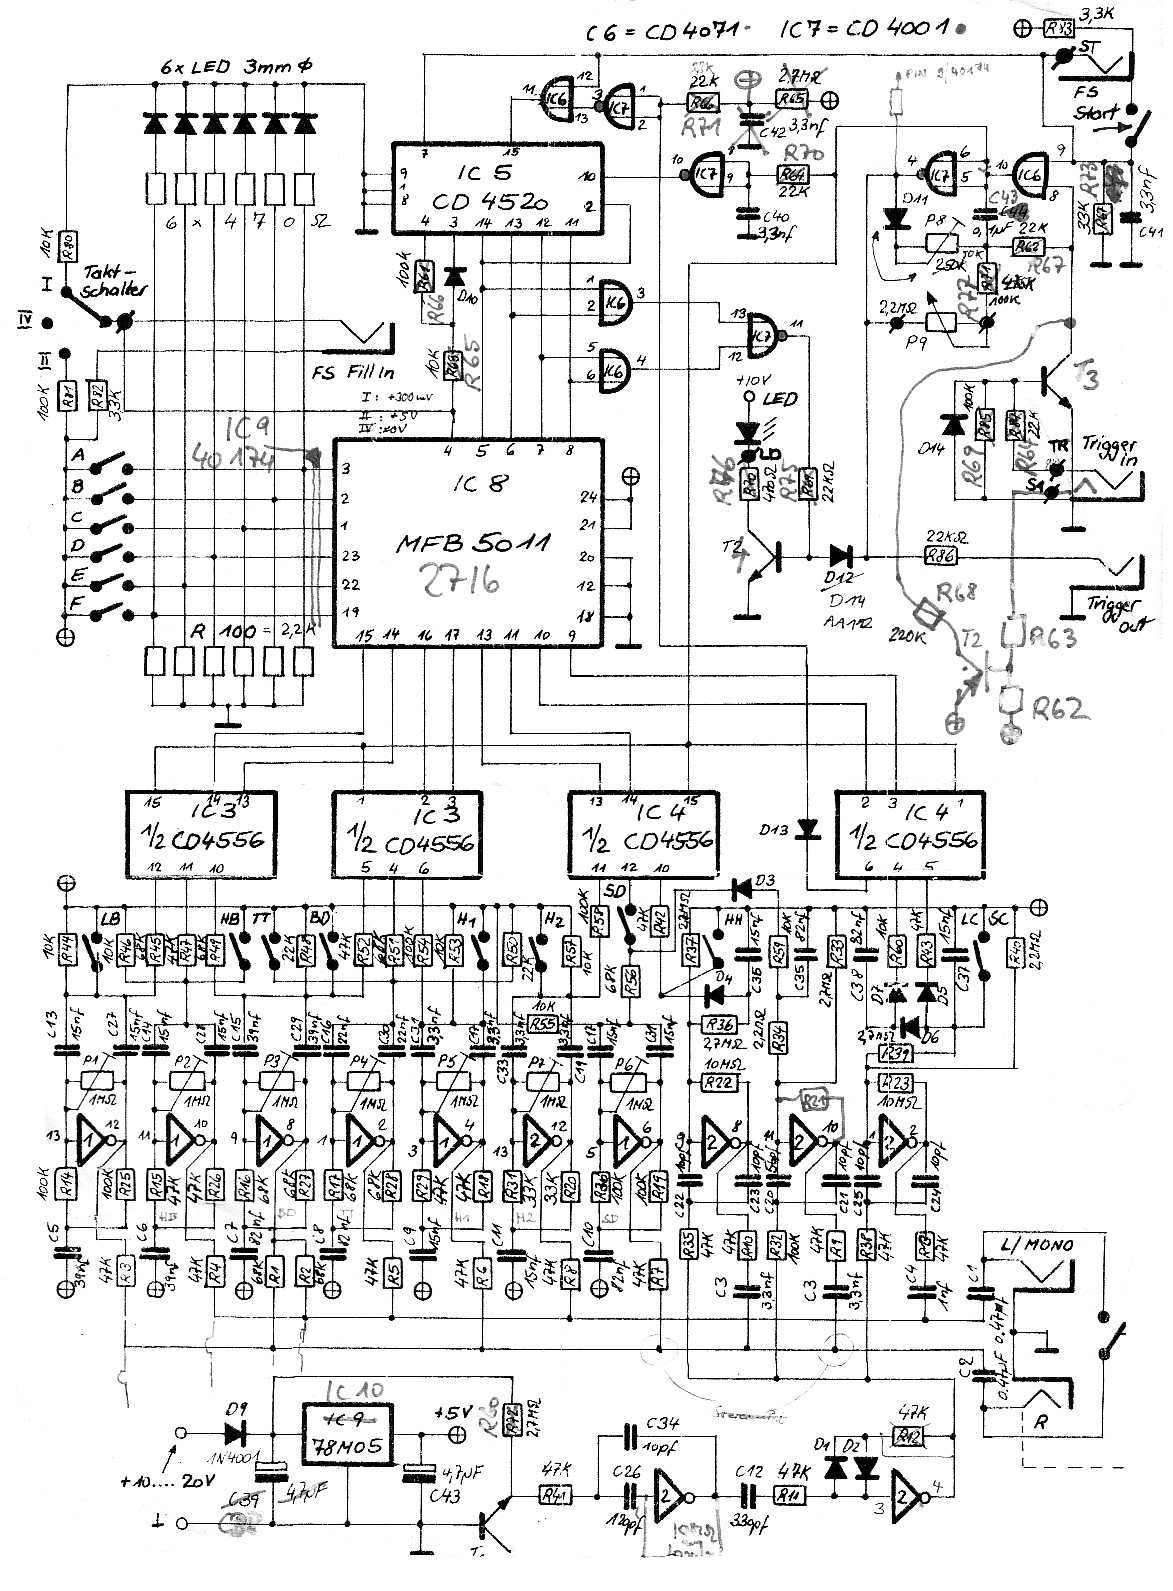 synthesizer service manuals free download rh synfo nl Schematic Circuit Diagram Wiring Diagram Symbols